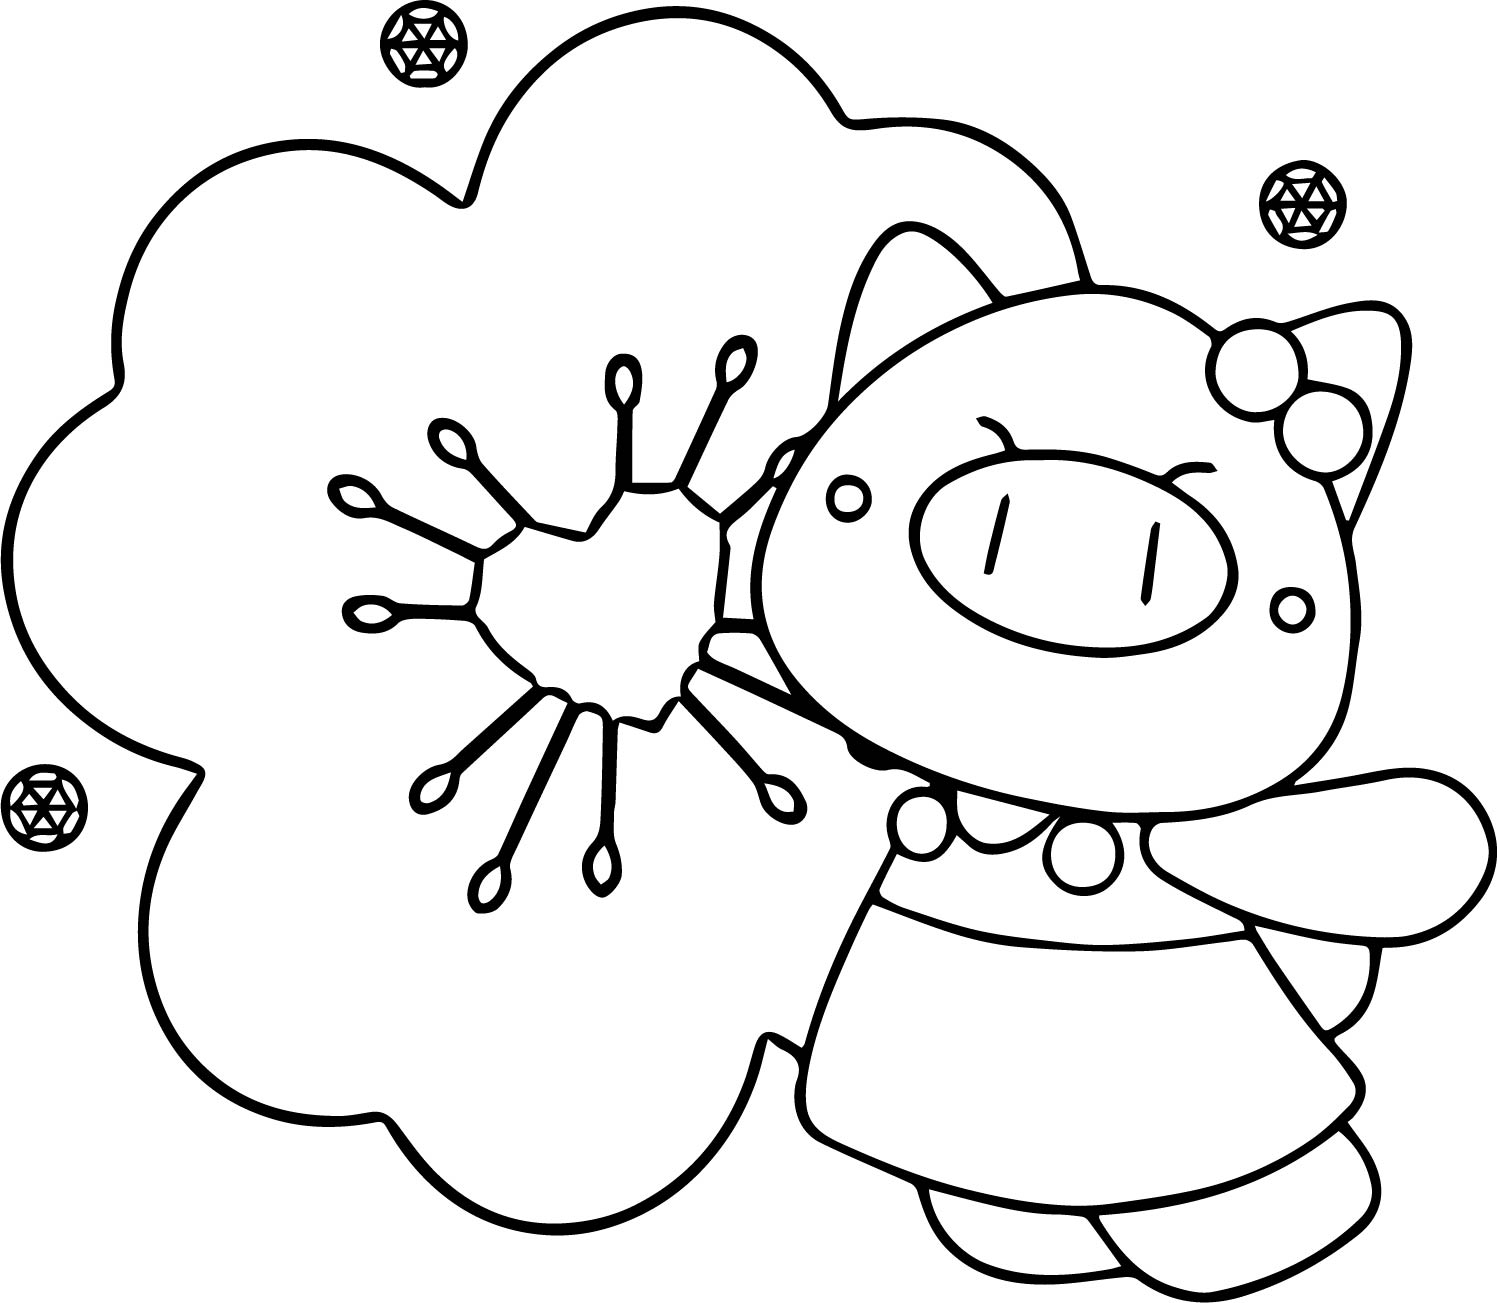 Pig Cartoon Wallpaper Coloring Page